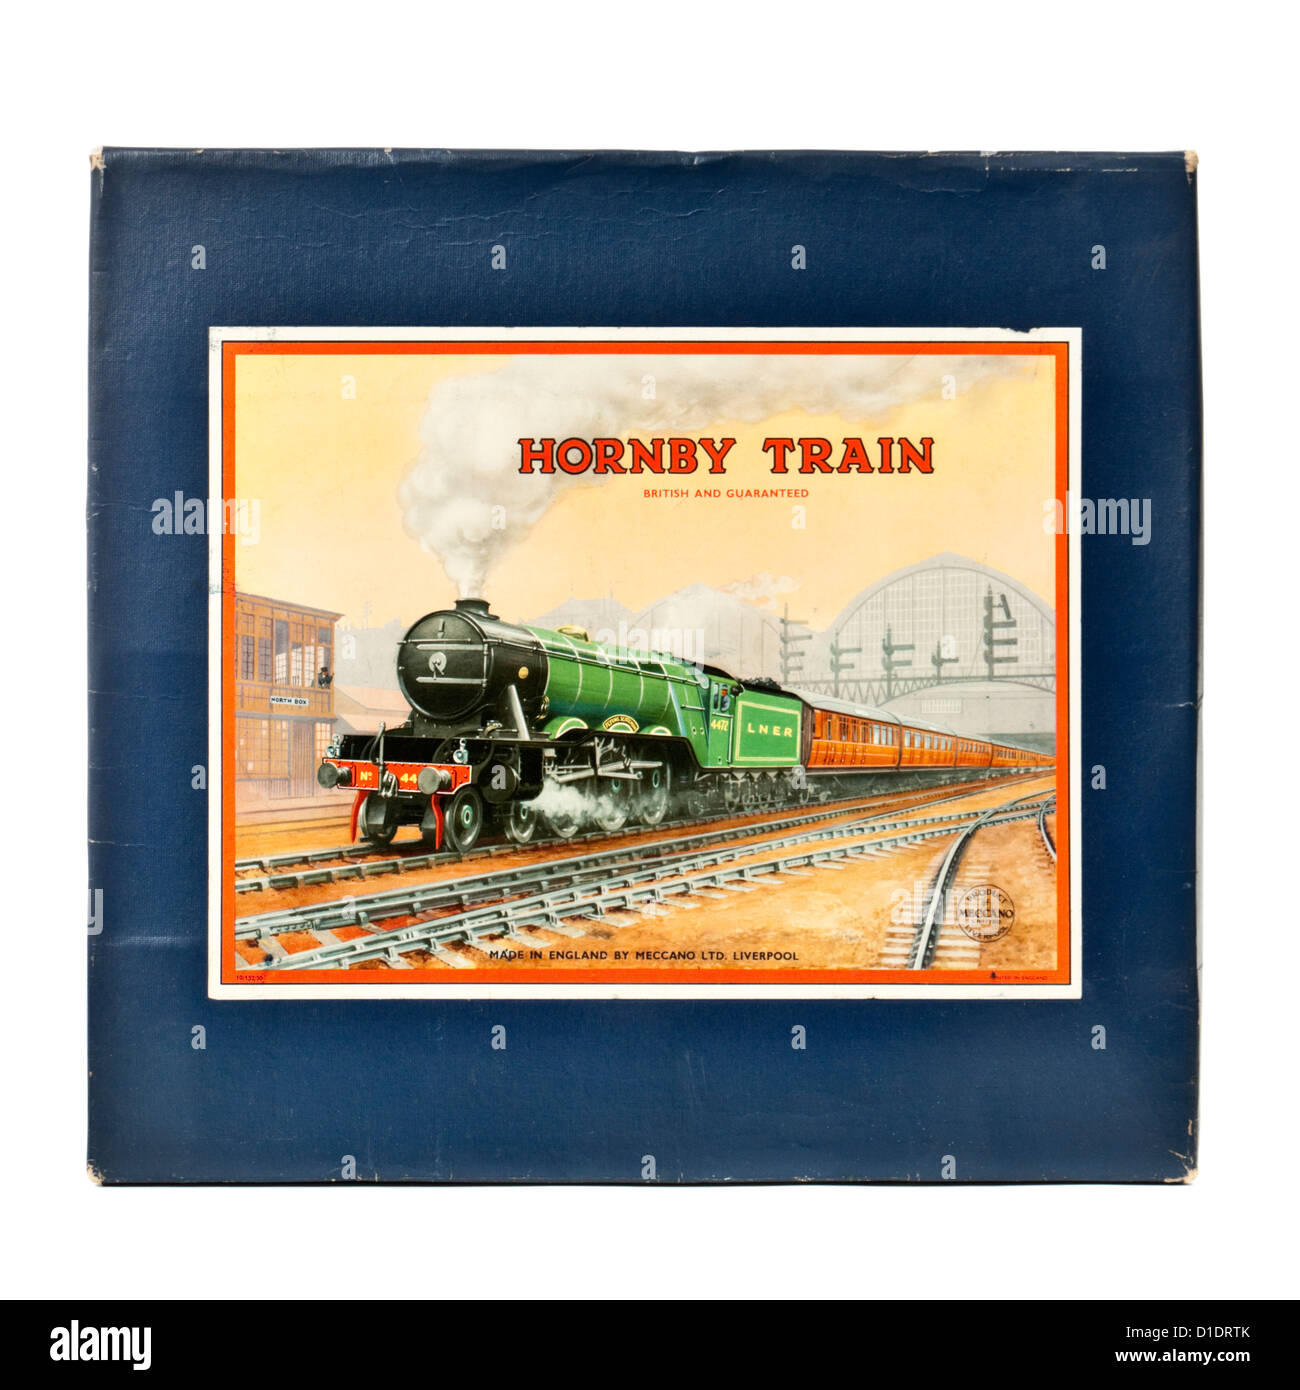 Rare 1950's Hornby (Meccano) No 101 Tank Passenger Train Set with clockwork tinplate LMS locomotive and carriages - Stock Image